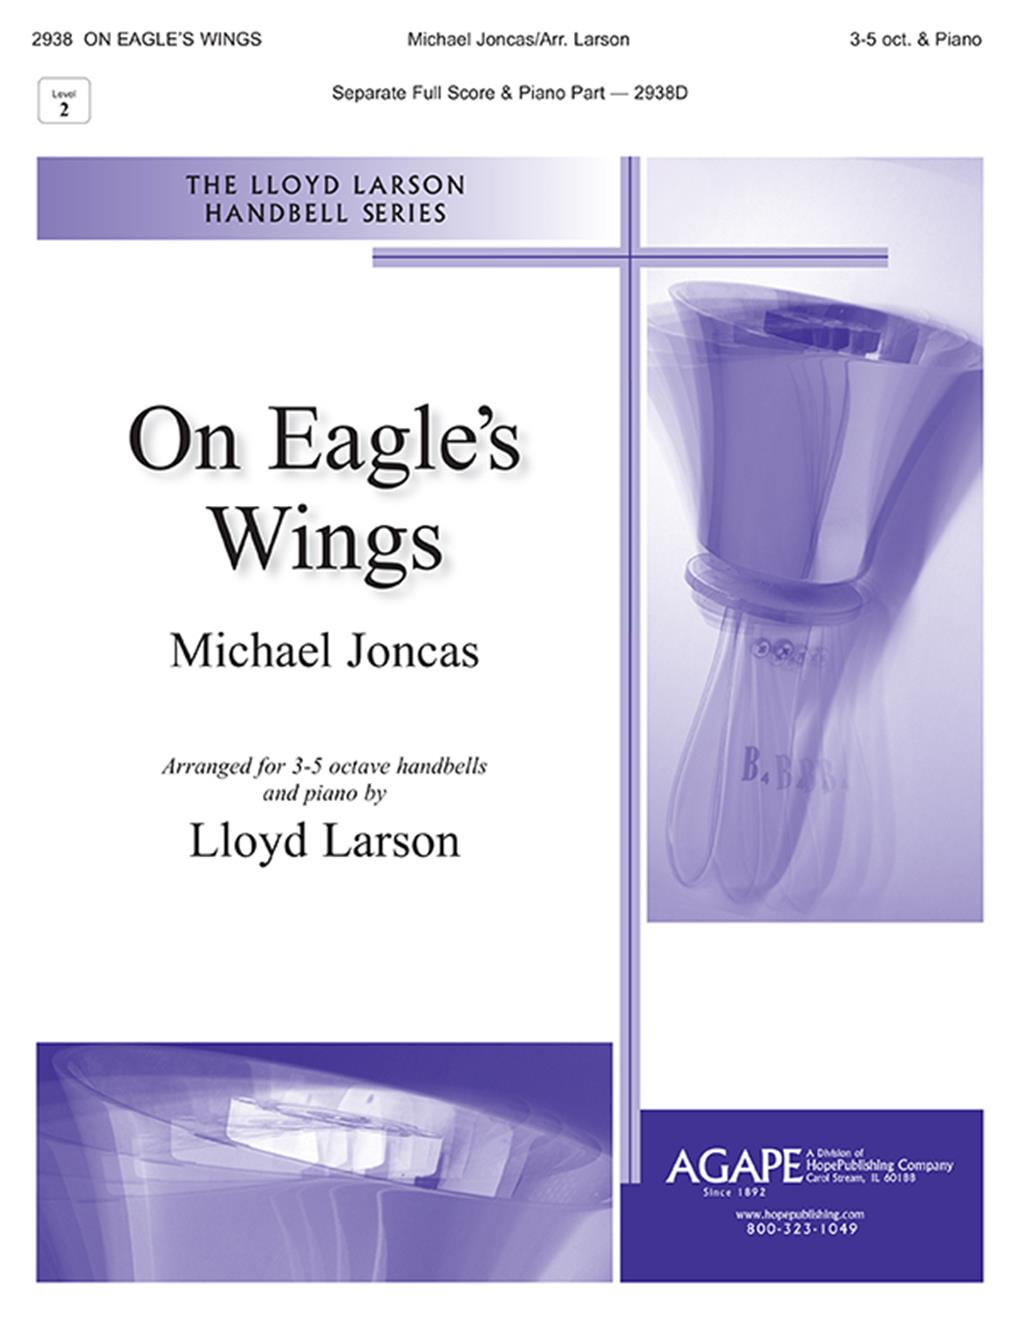 On Eagle's Wings - 3-5 Oct. Cover Image